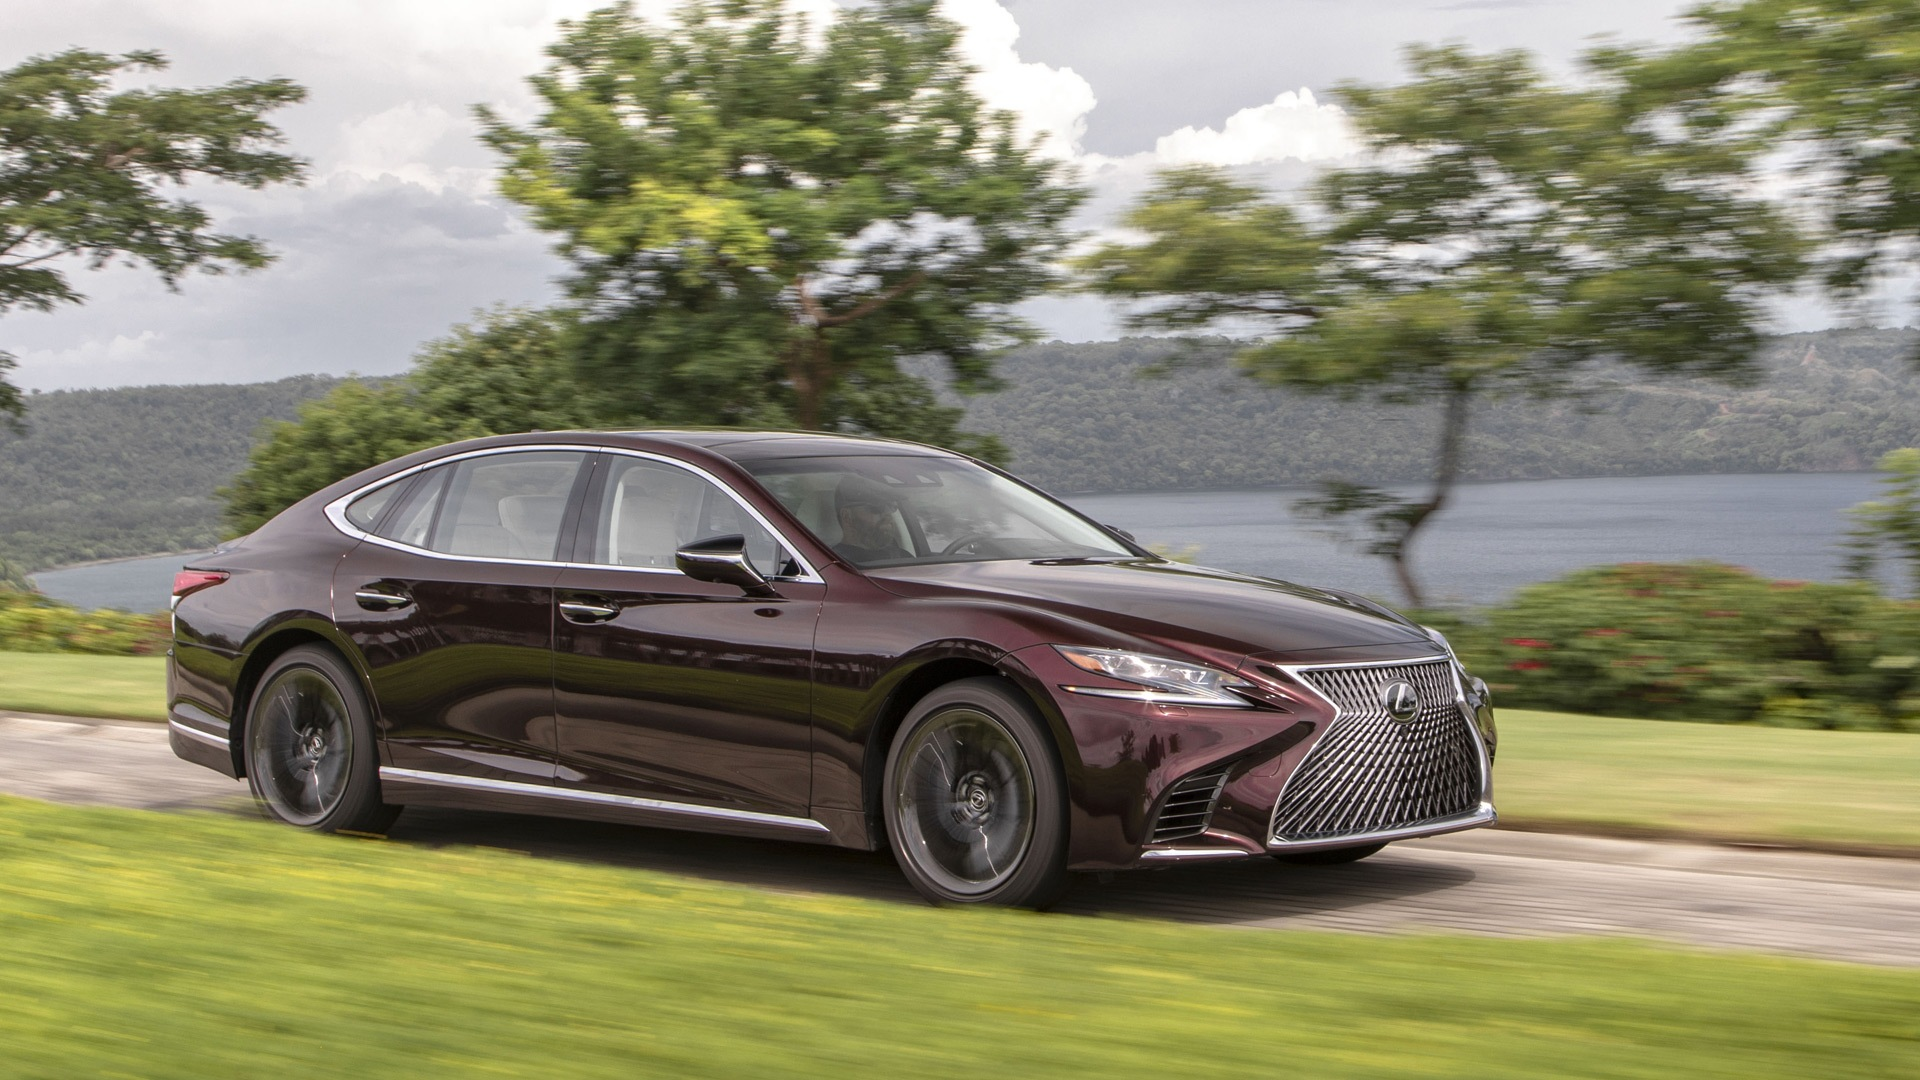 88 New Lexus Is 2020 Engine by Lexus Is 2020